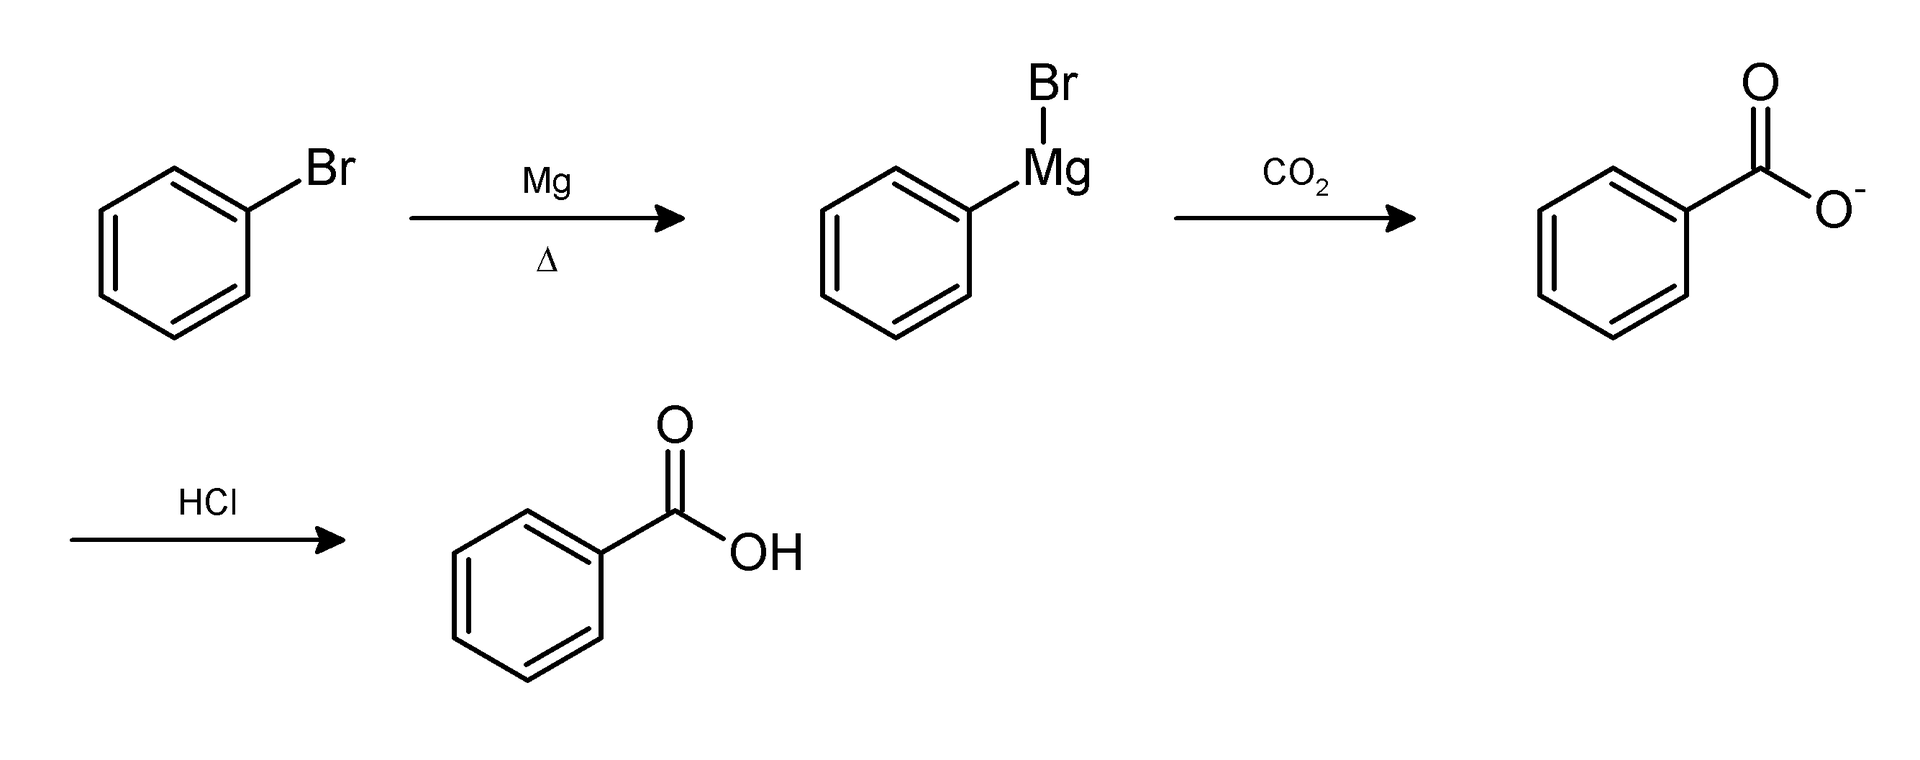 the grignard reaction synthesis of The grignard reaction is a useful synthetic procedure for forming new carbon- carbon bonds this organometallic chemical reaction involves alkyl- or aryl-magnesium.